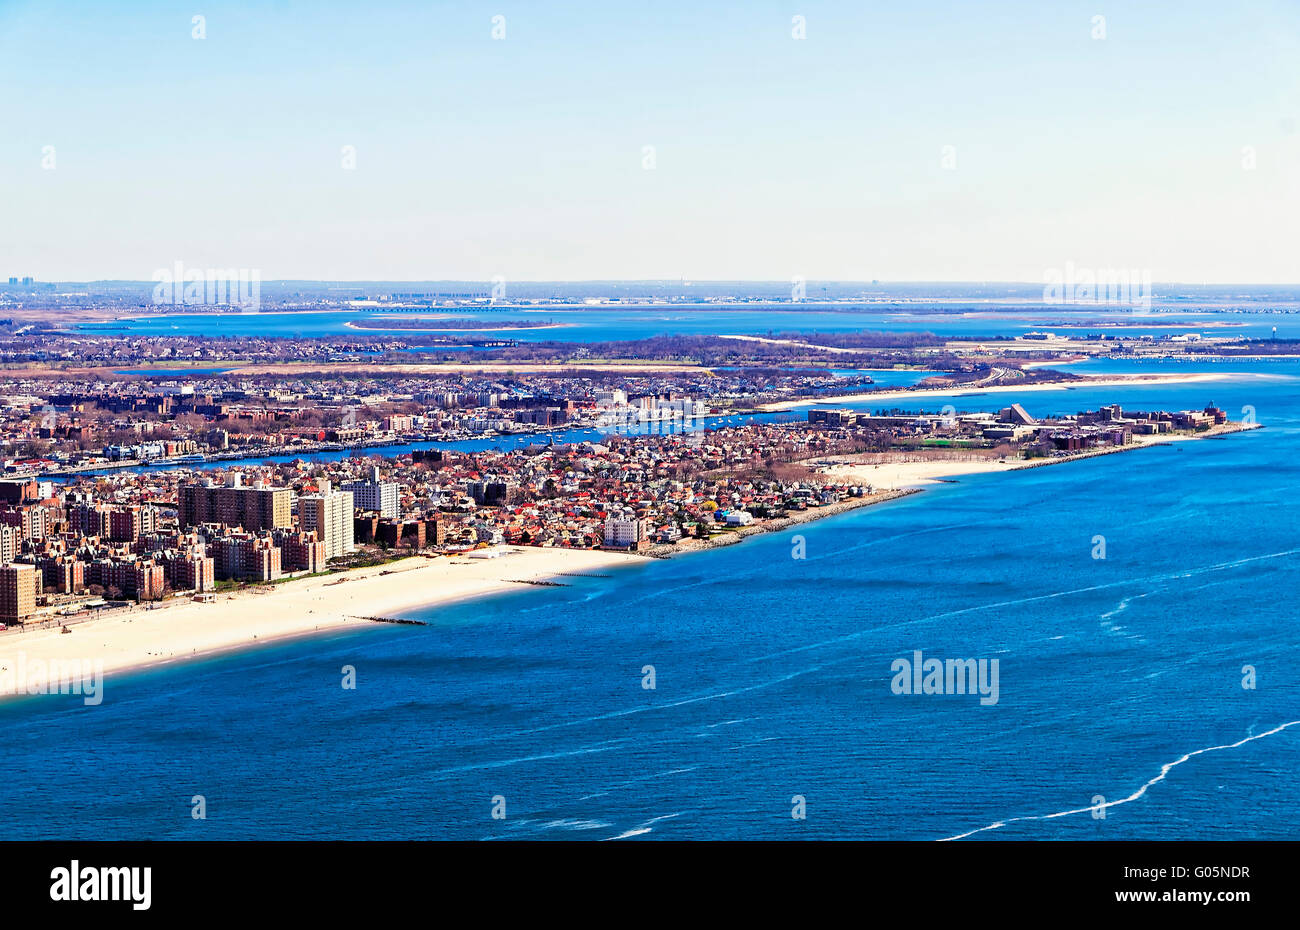 Aerial view from helicopter of Long Island in New York, USA. It is the westernmost residential and commercial neighborhood - Stock Image